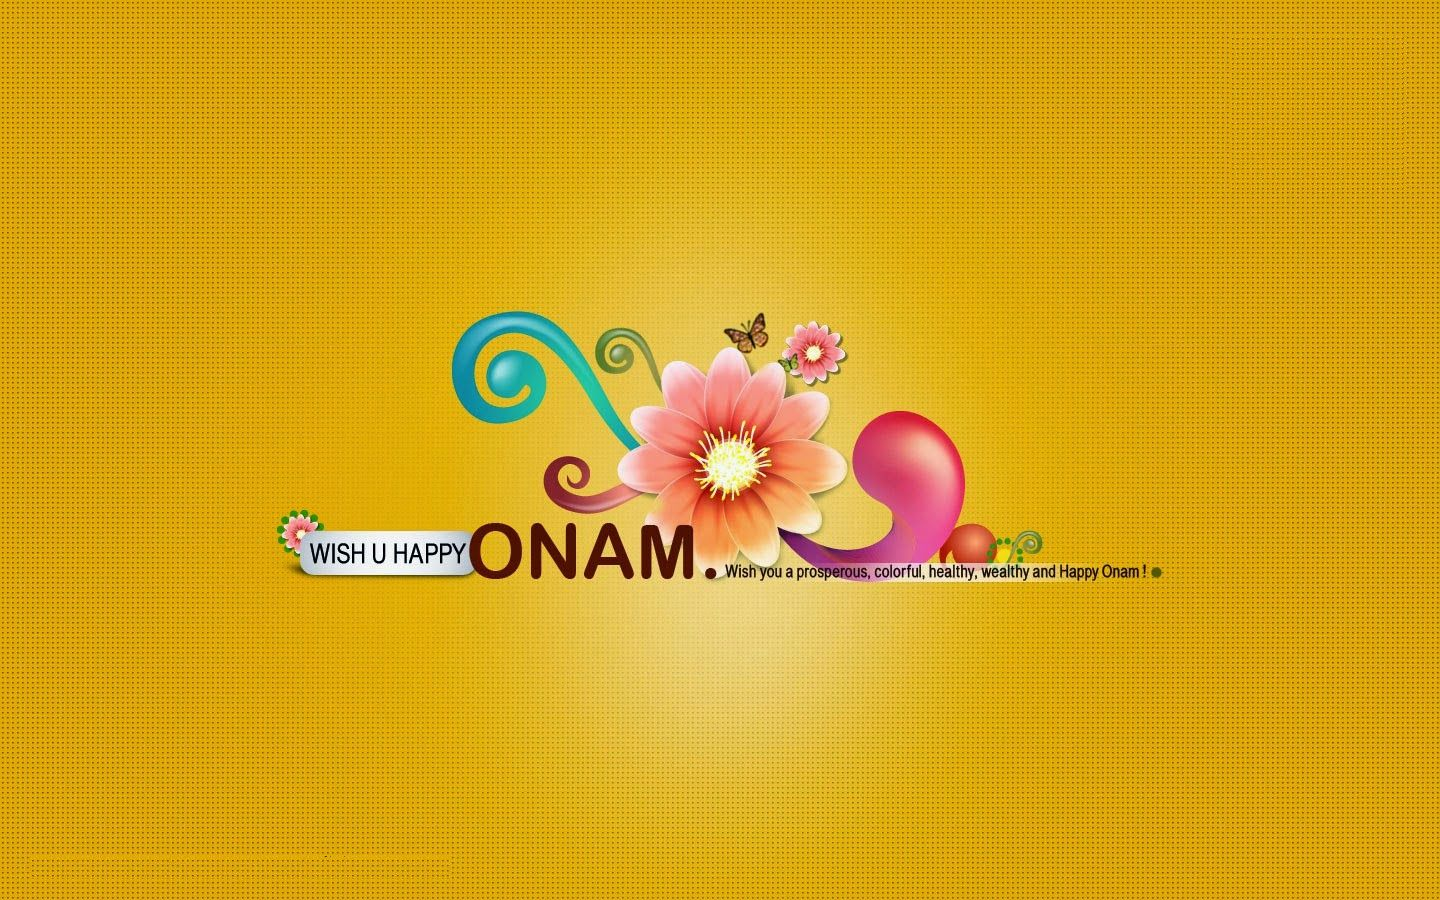 Onam images with greetings happy onam pinterest onam images happy onam hd wallpapers onam greetings background photos in hd kristyandbryce Image collections